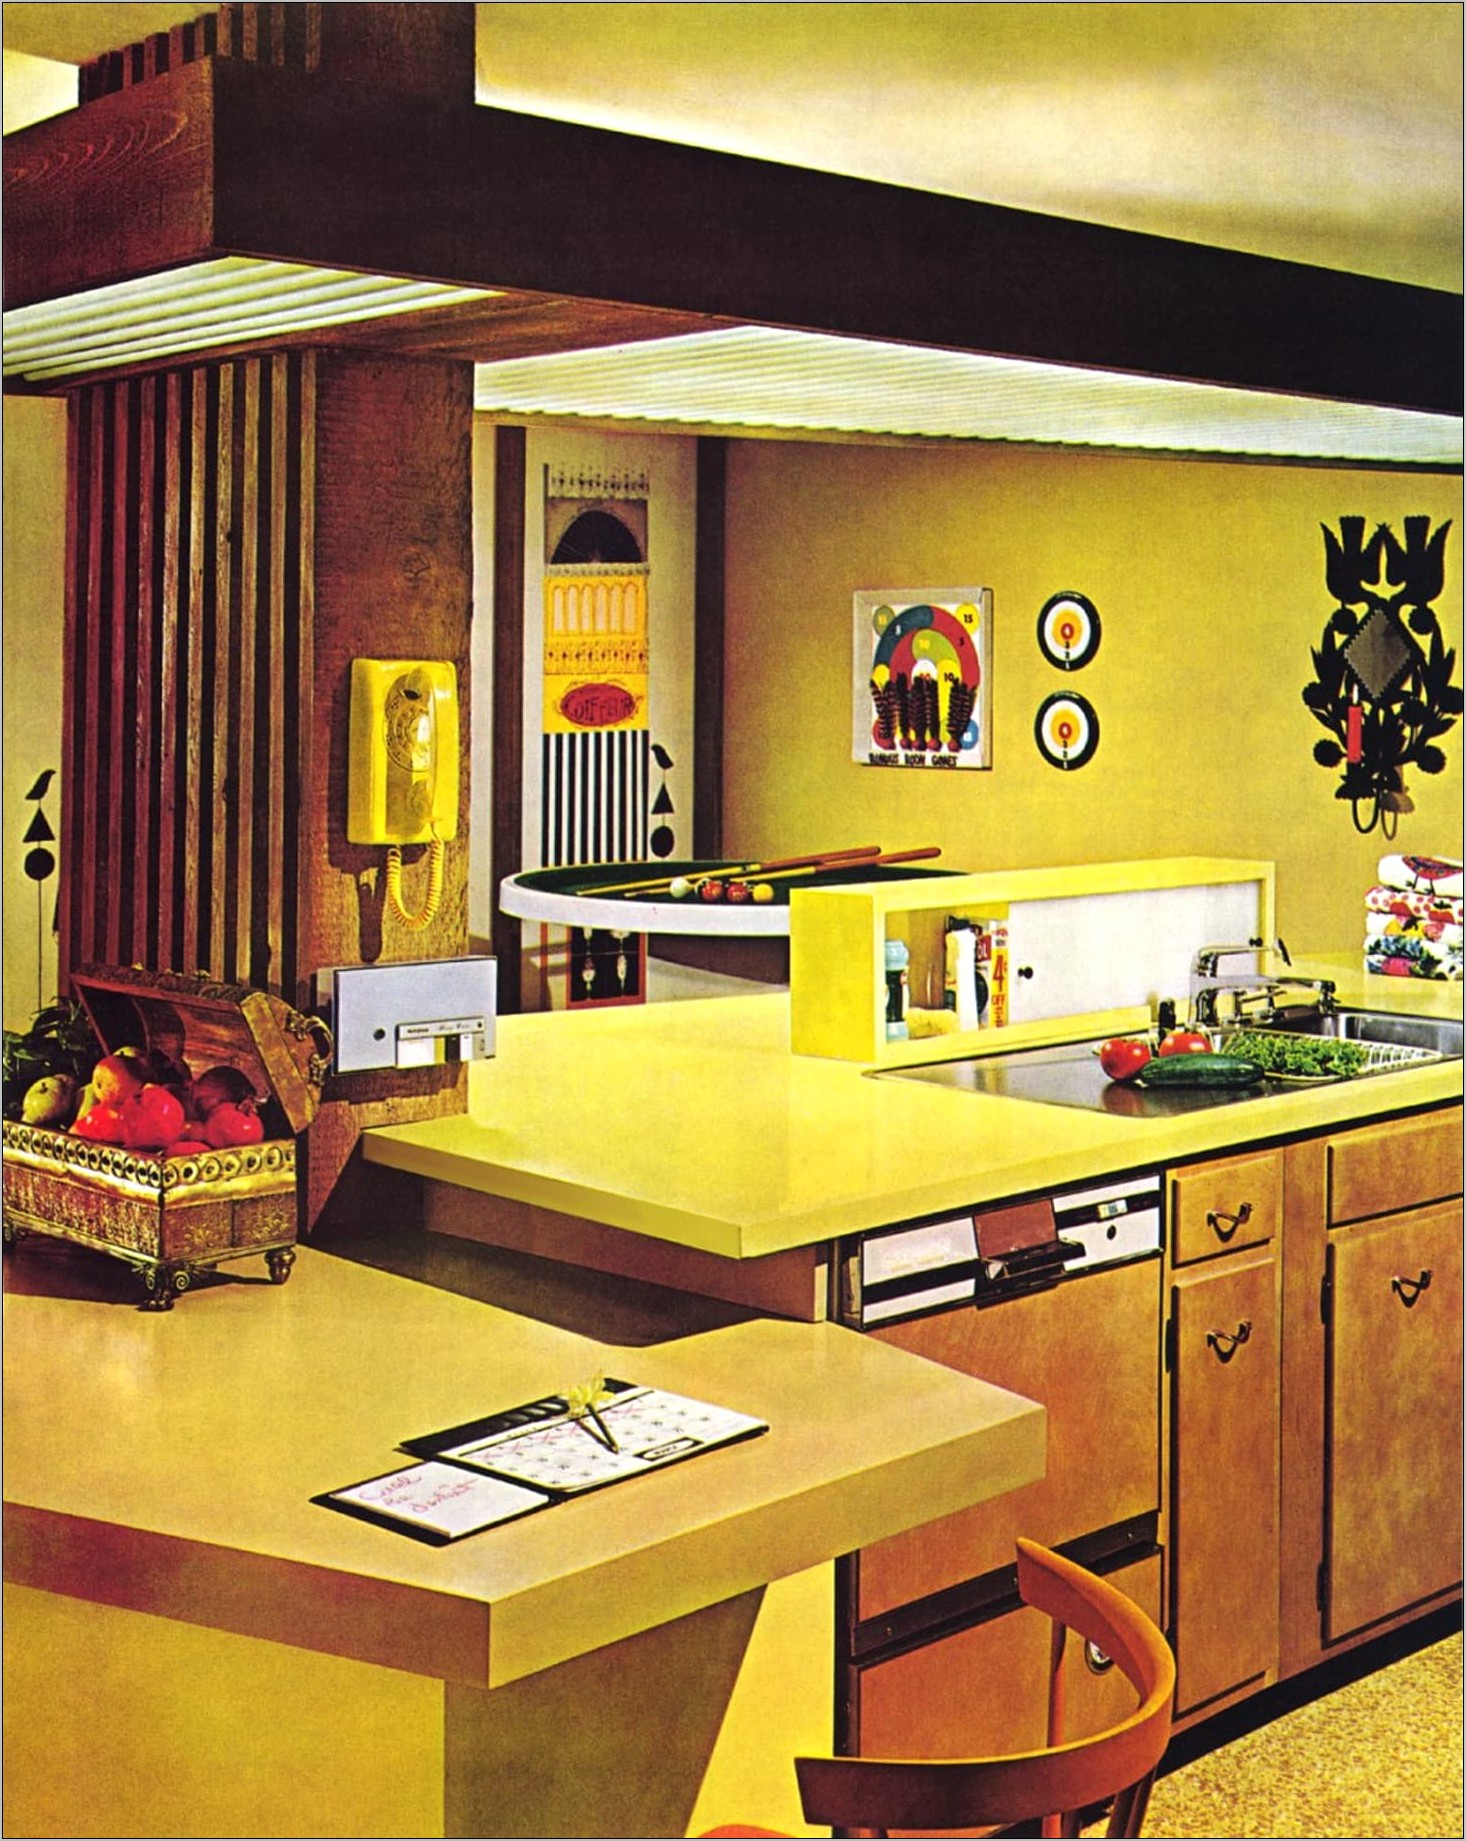 Decorating An 80s Kitchen